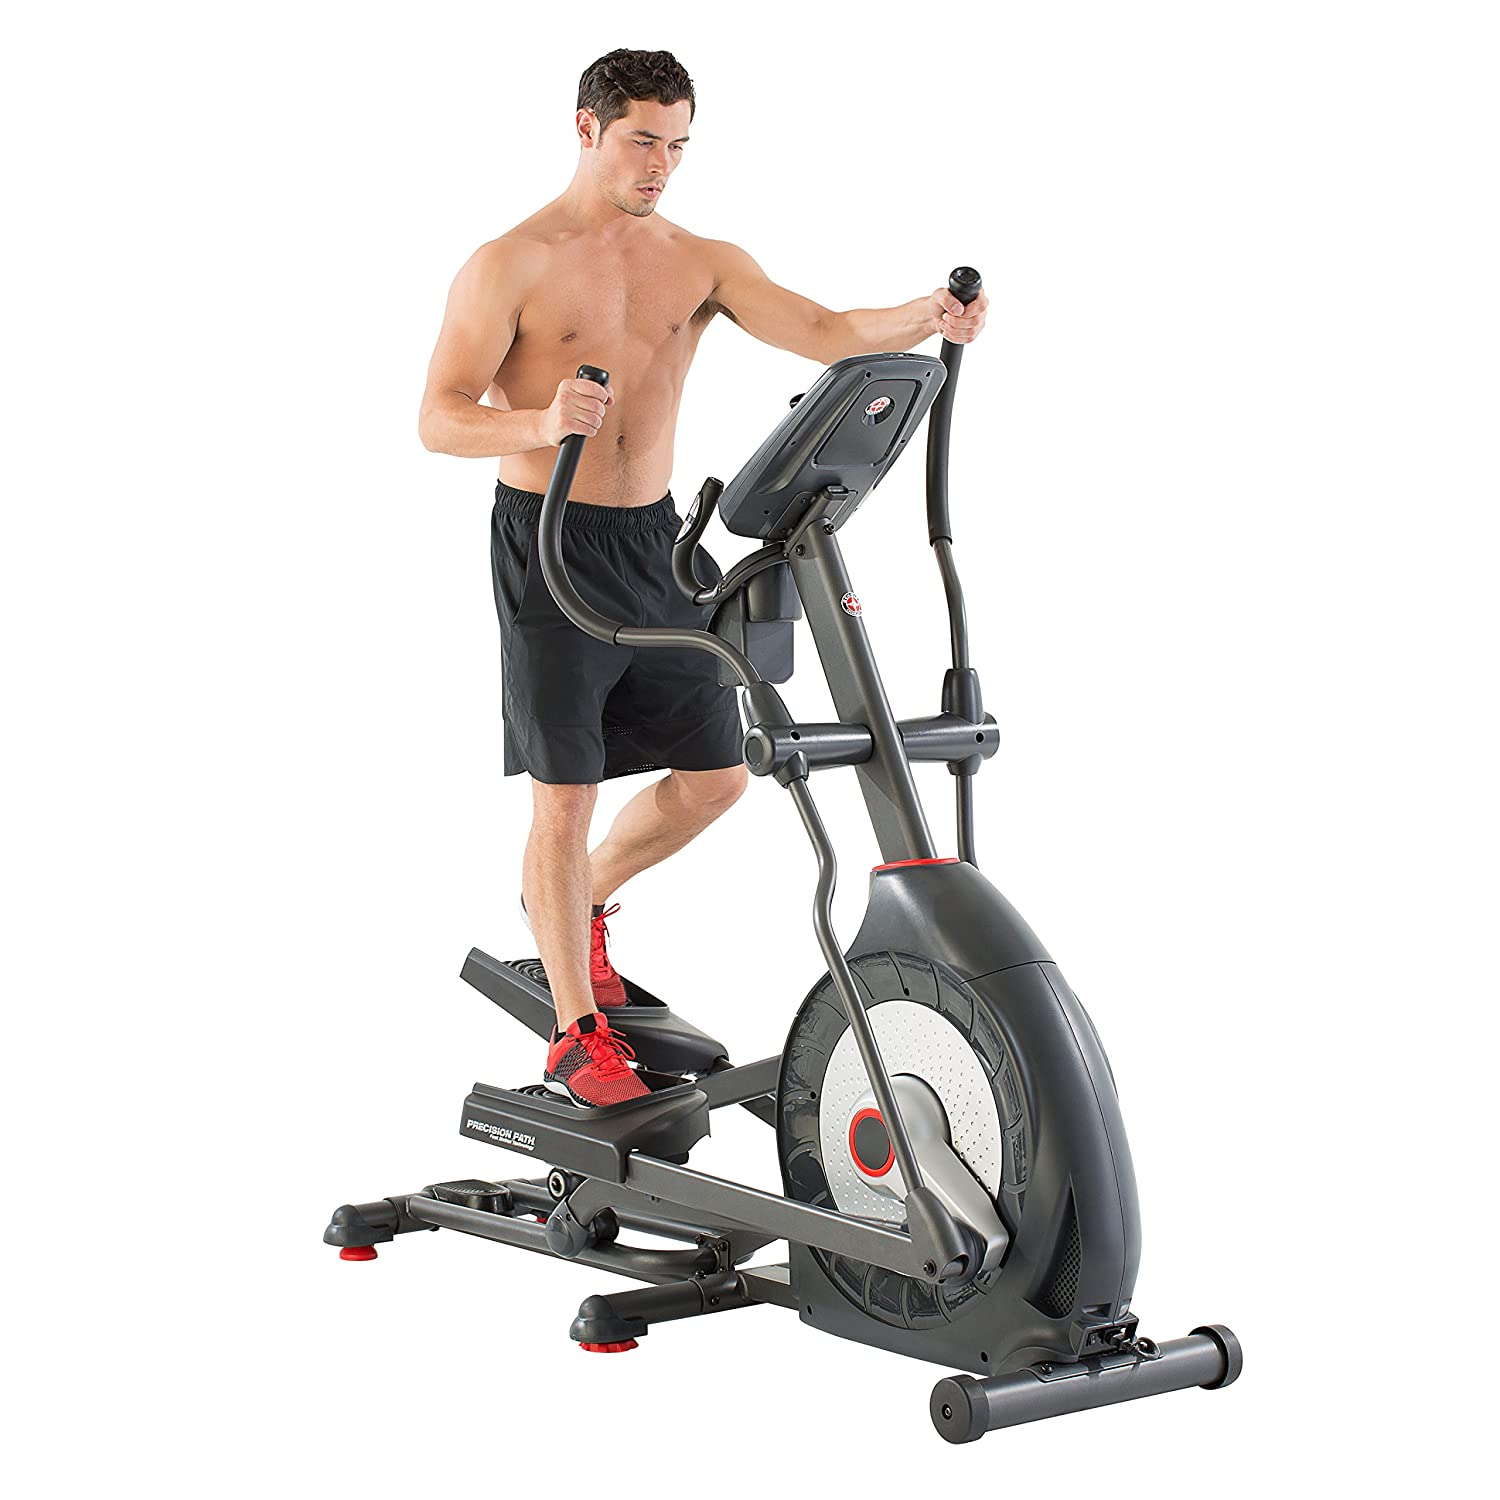 Schwinn 470 Elliptical Machine – Best All-Around Elliptical Under 1000 Dollars